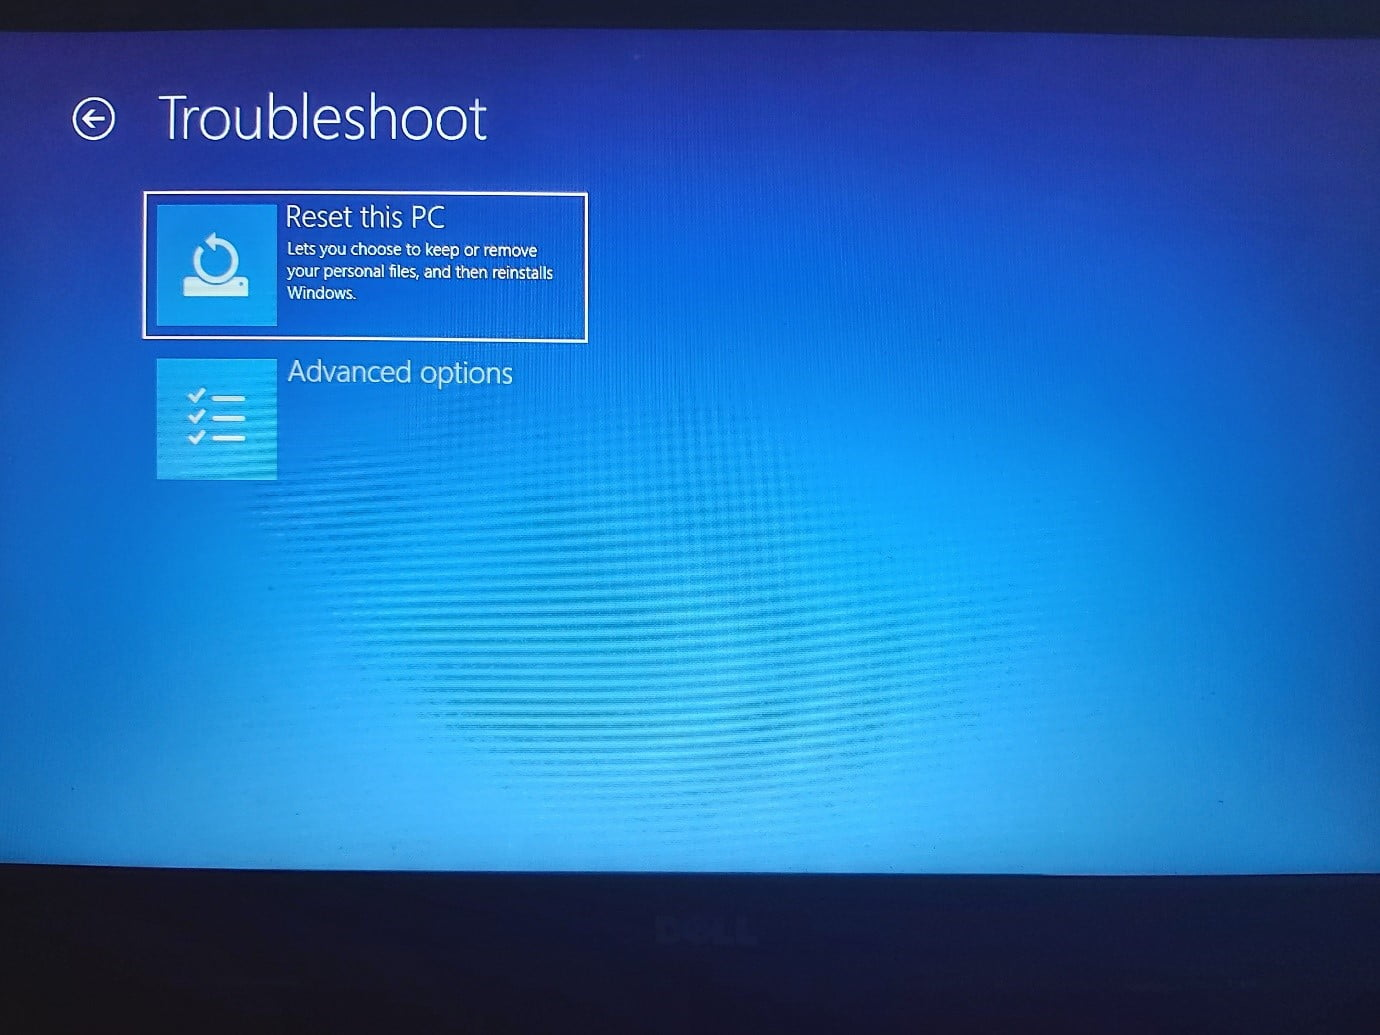 Select Reset this PC on the Troubleshoot page